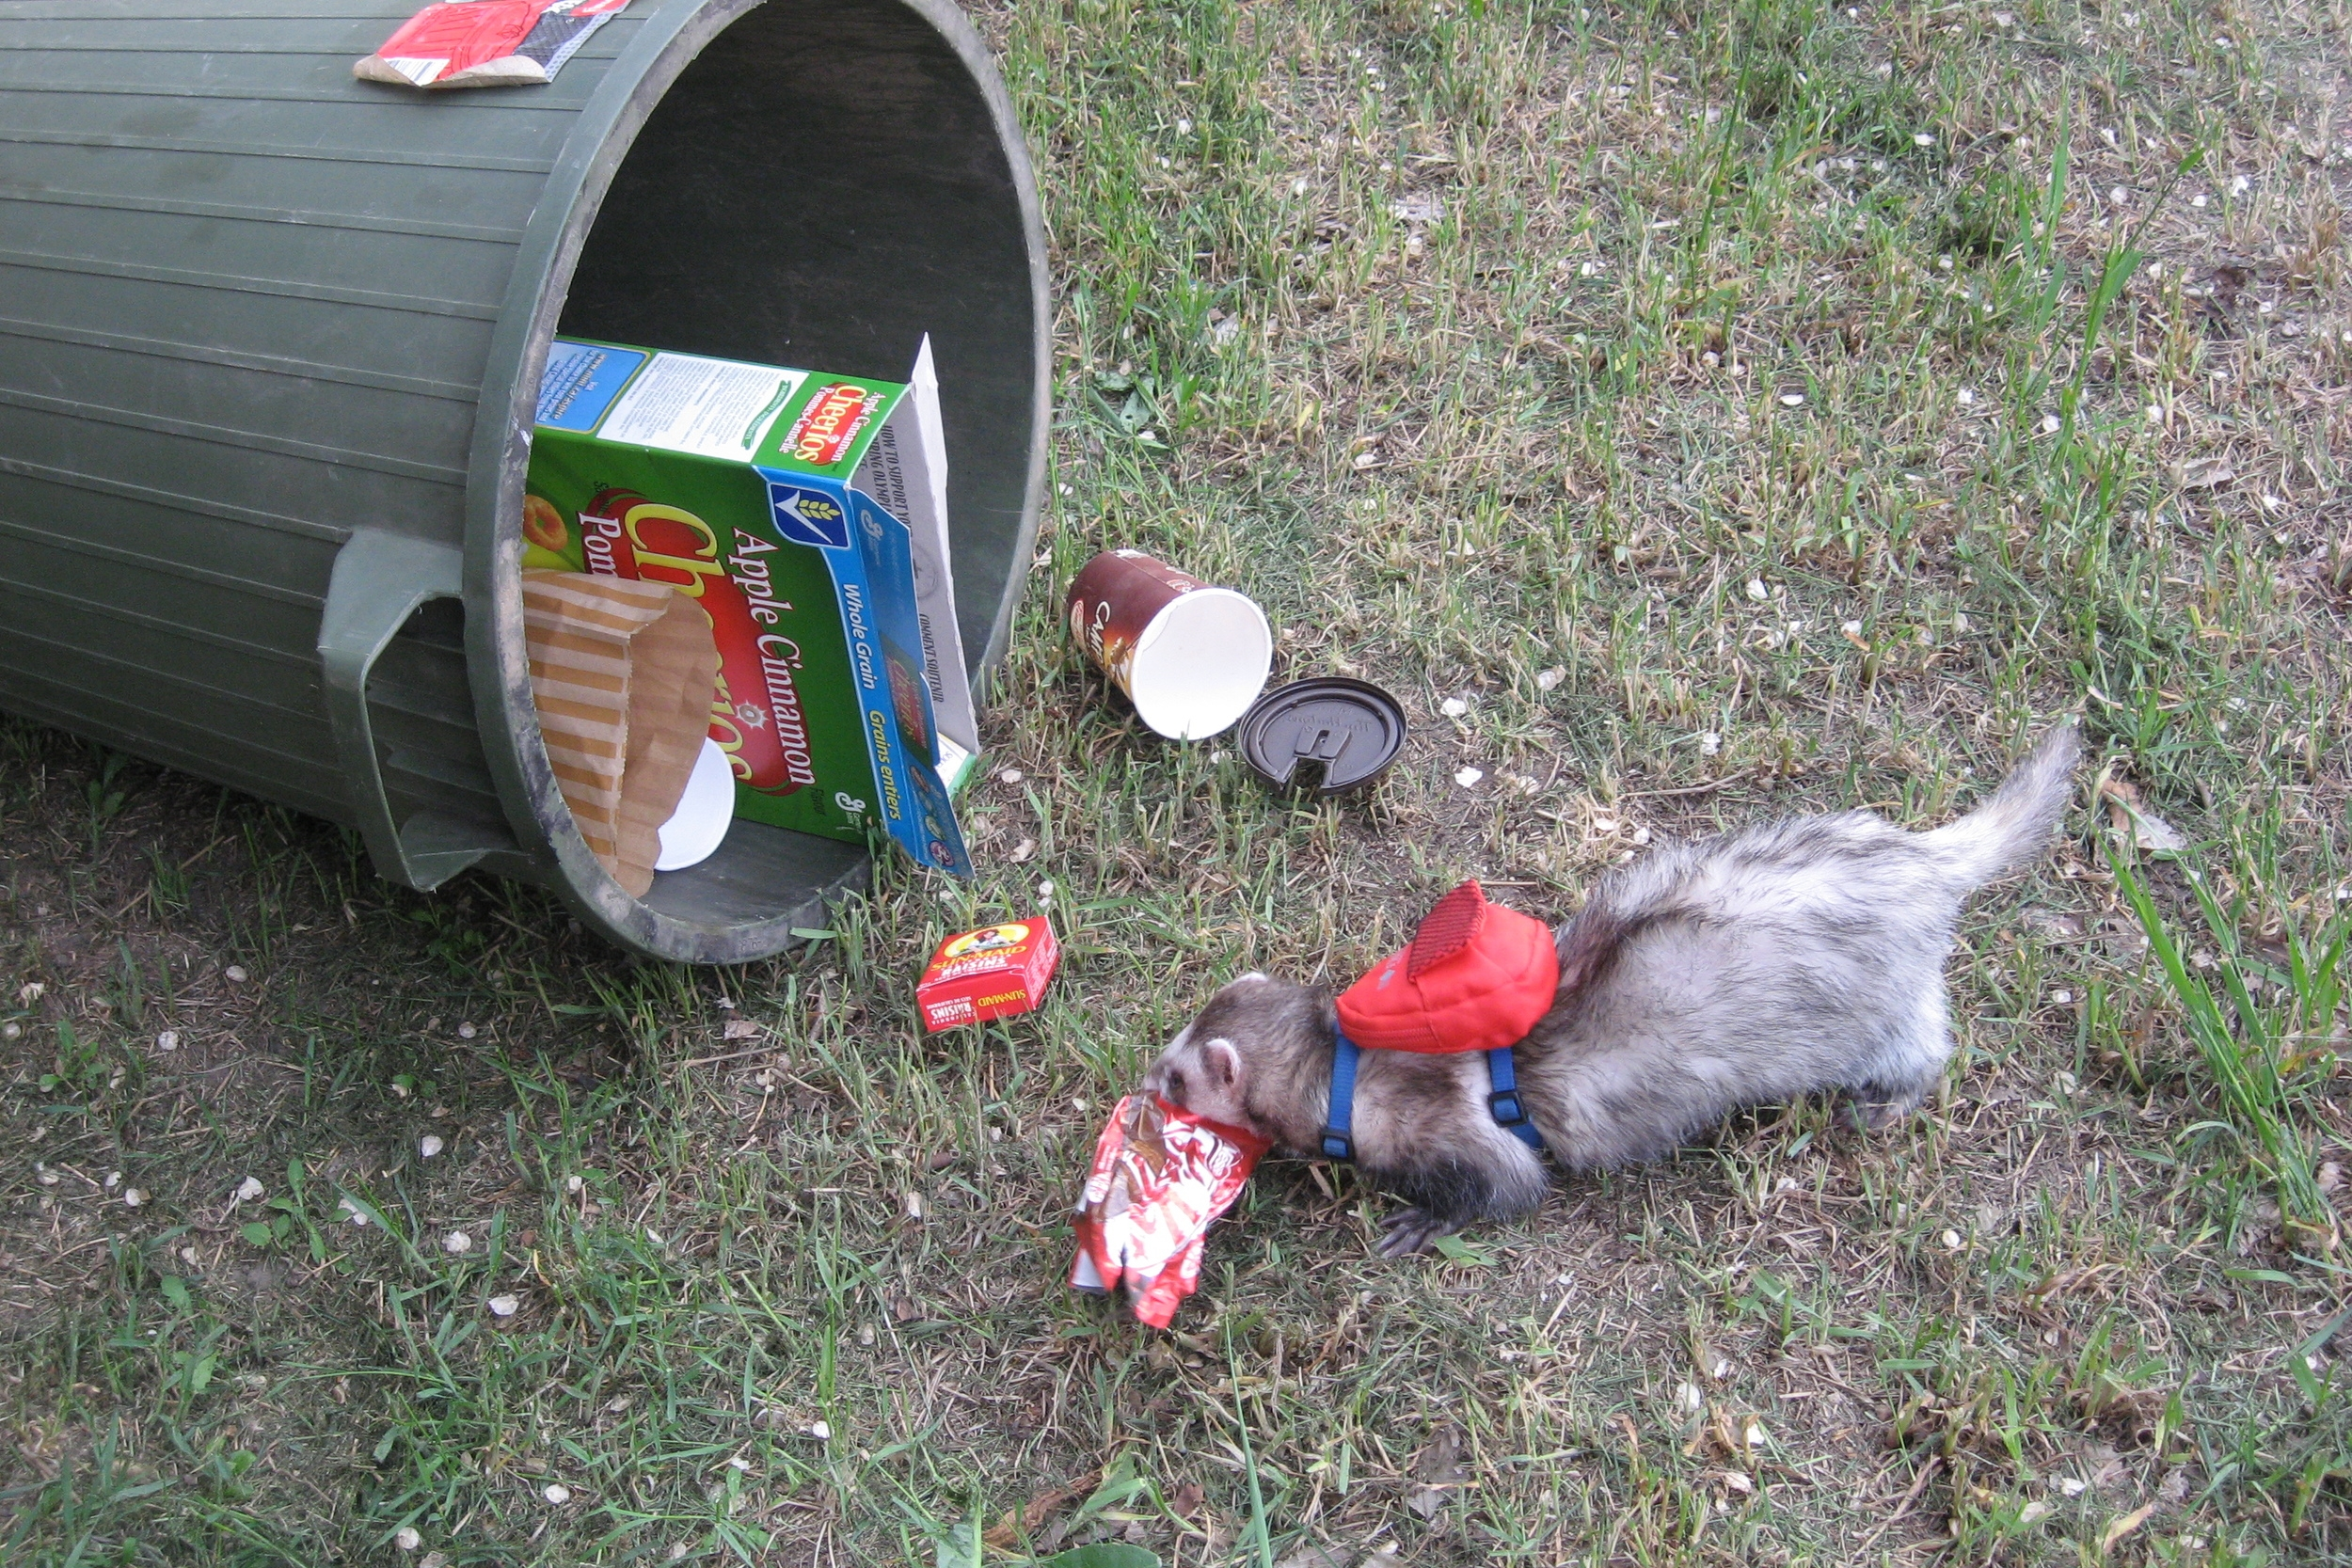 Here Duke is demonstratingwhat he looked like when he rummaged through the trash for scraps of food. He'shappy the skunk bully was not here to help him re-enact this photo like in his book.